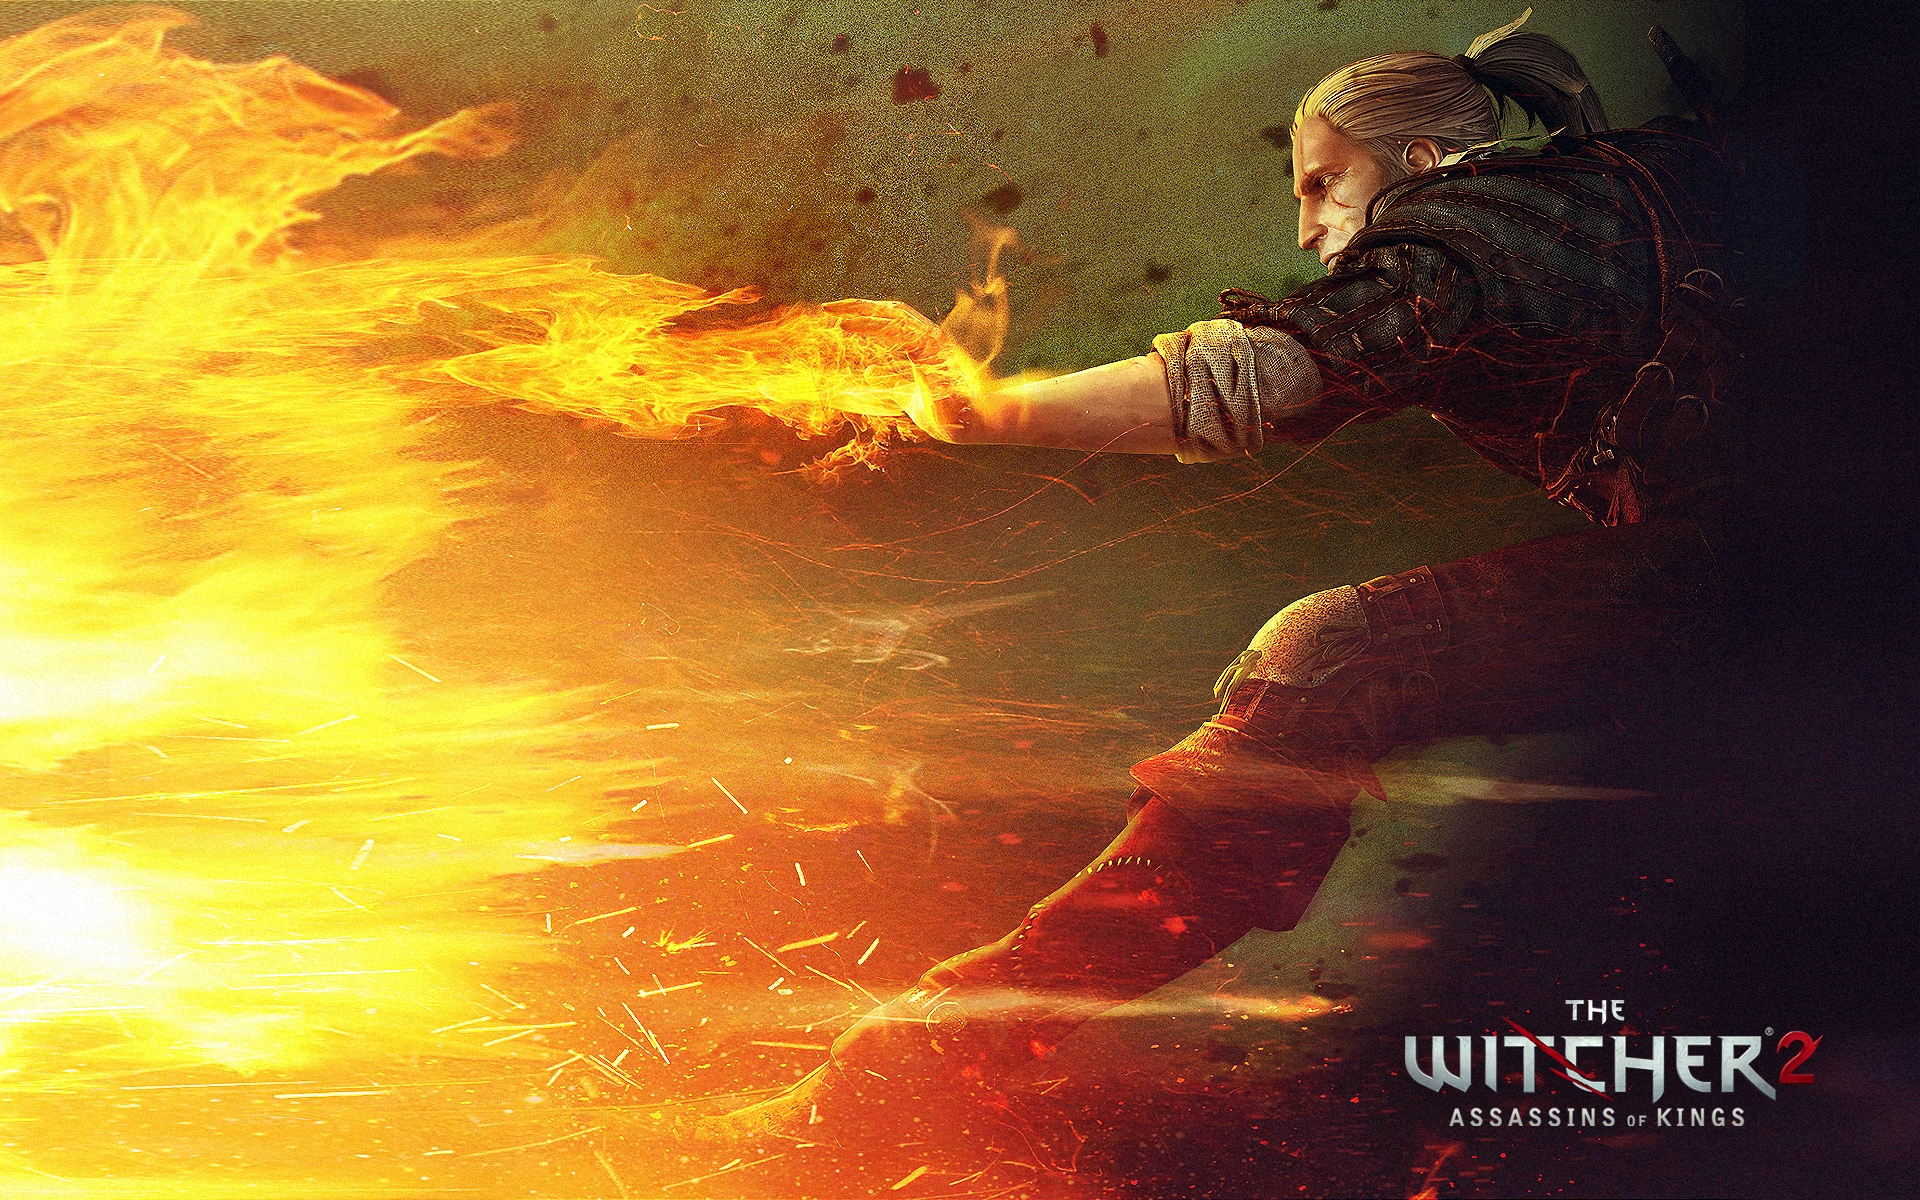 The Witcher 2 wallpaper 3